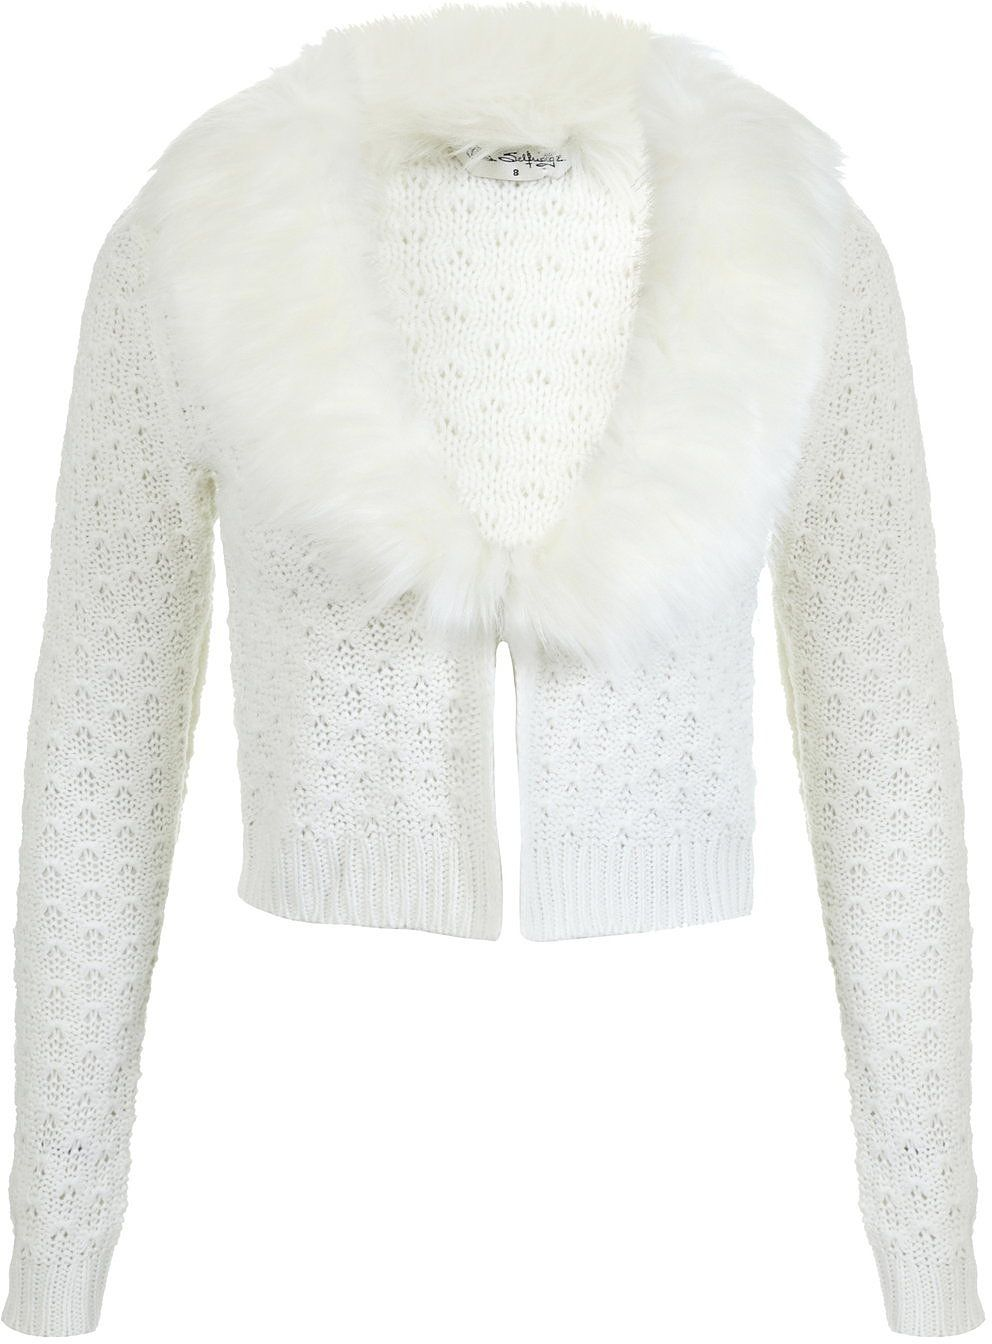 Womens cream cardigan from Miss Selfridge - £35.10 at ClothingByColour.com